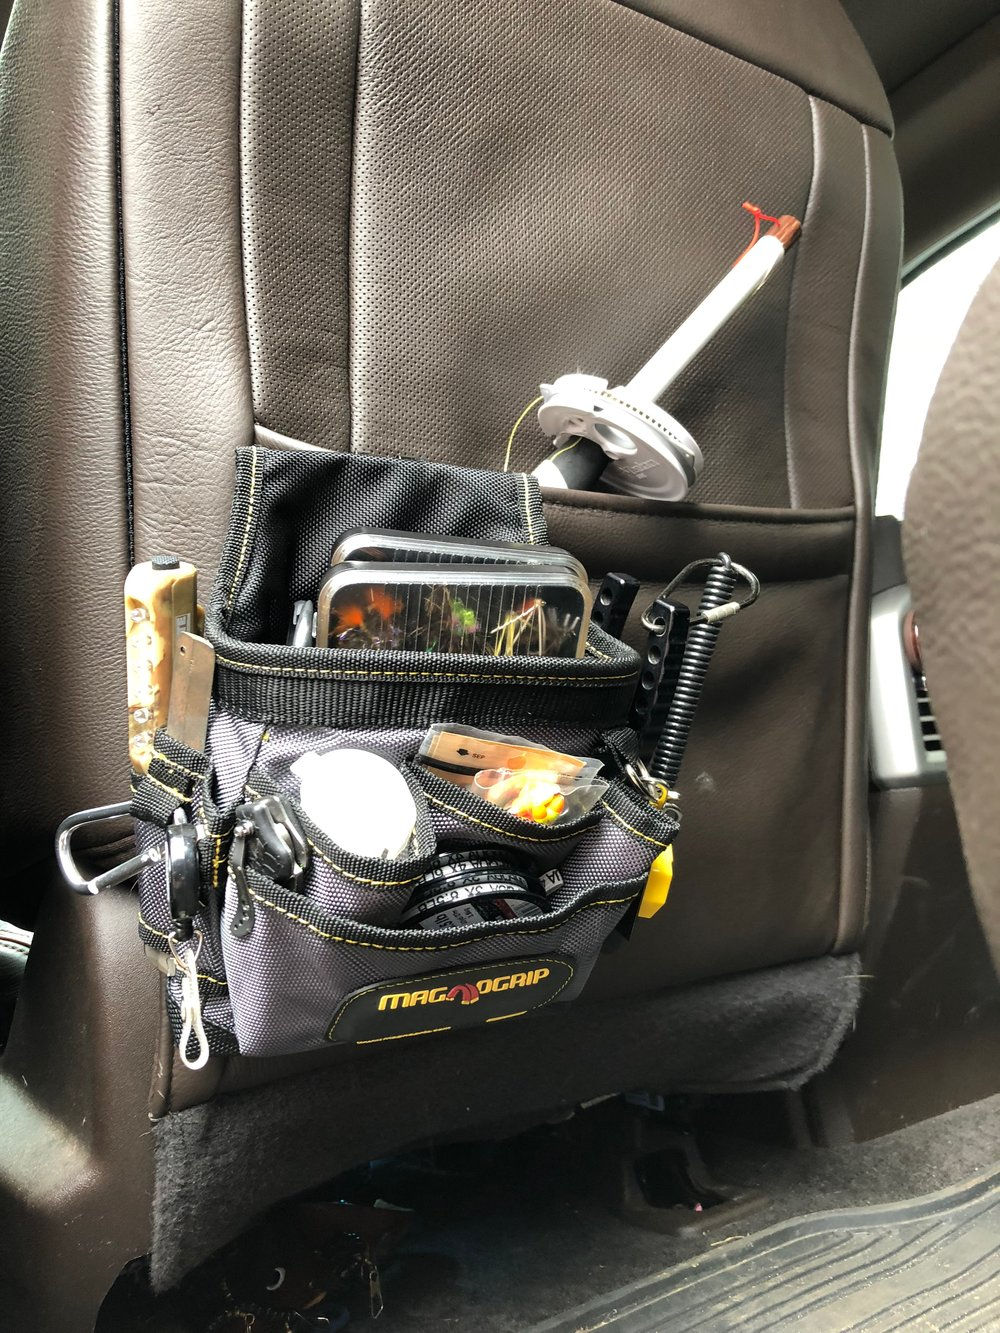 This bag is perfect for a ready at a moment's notice kit for your vehicle!